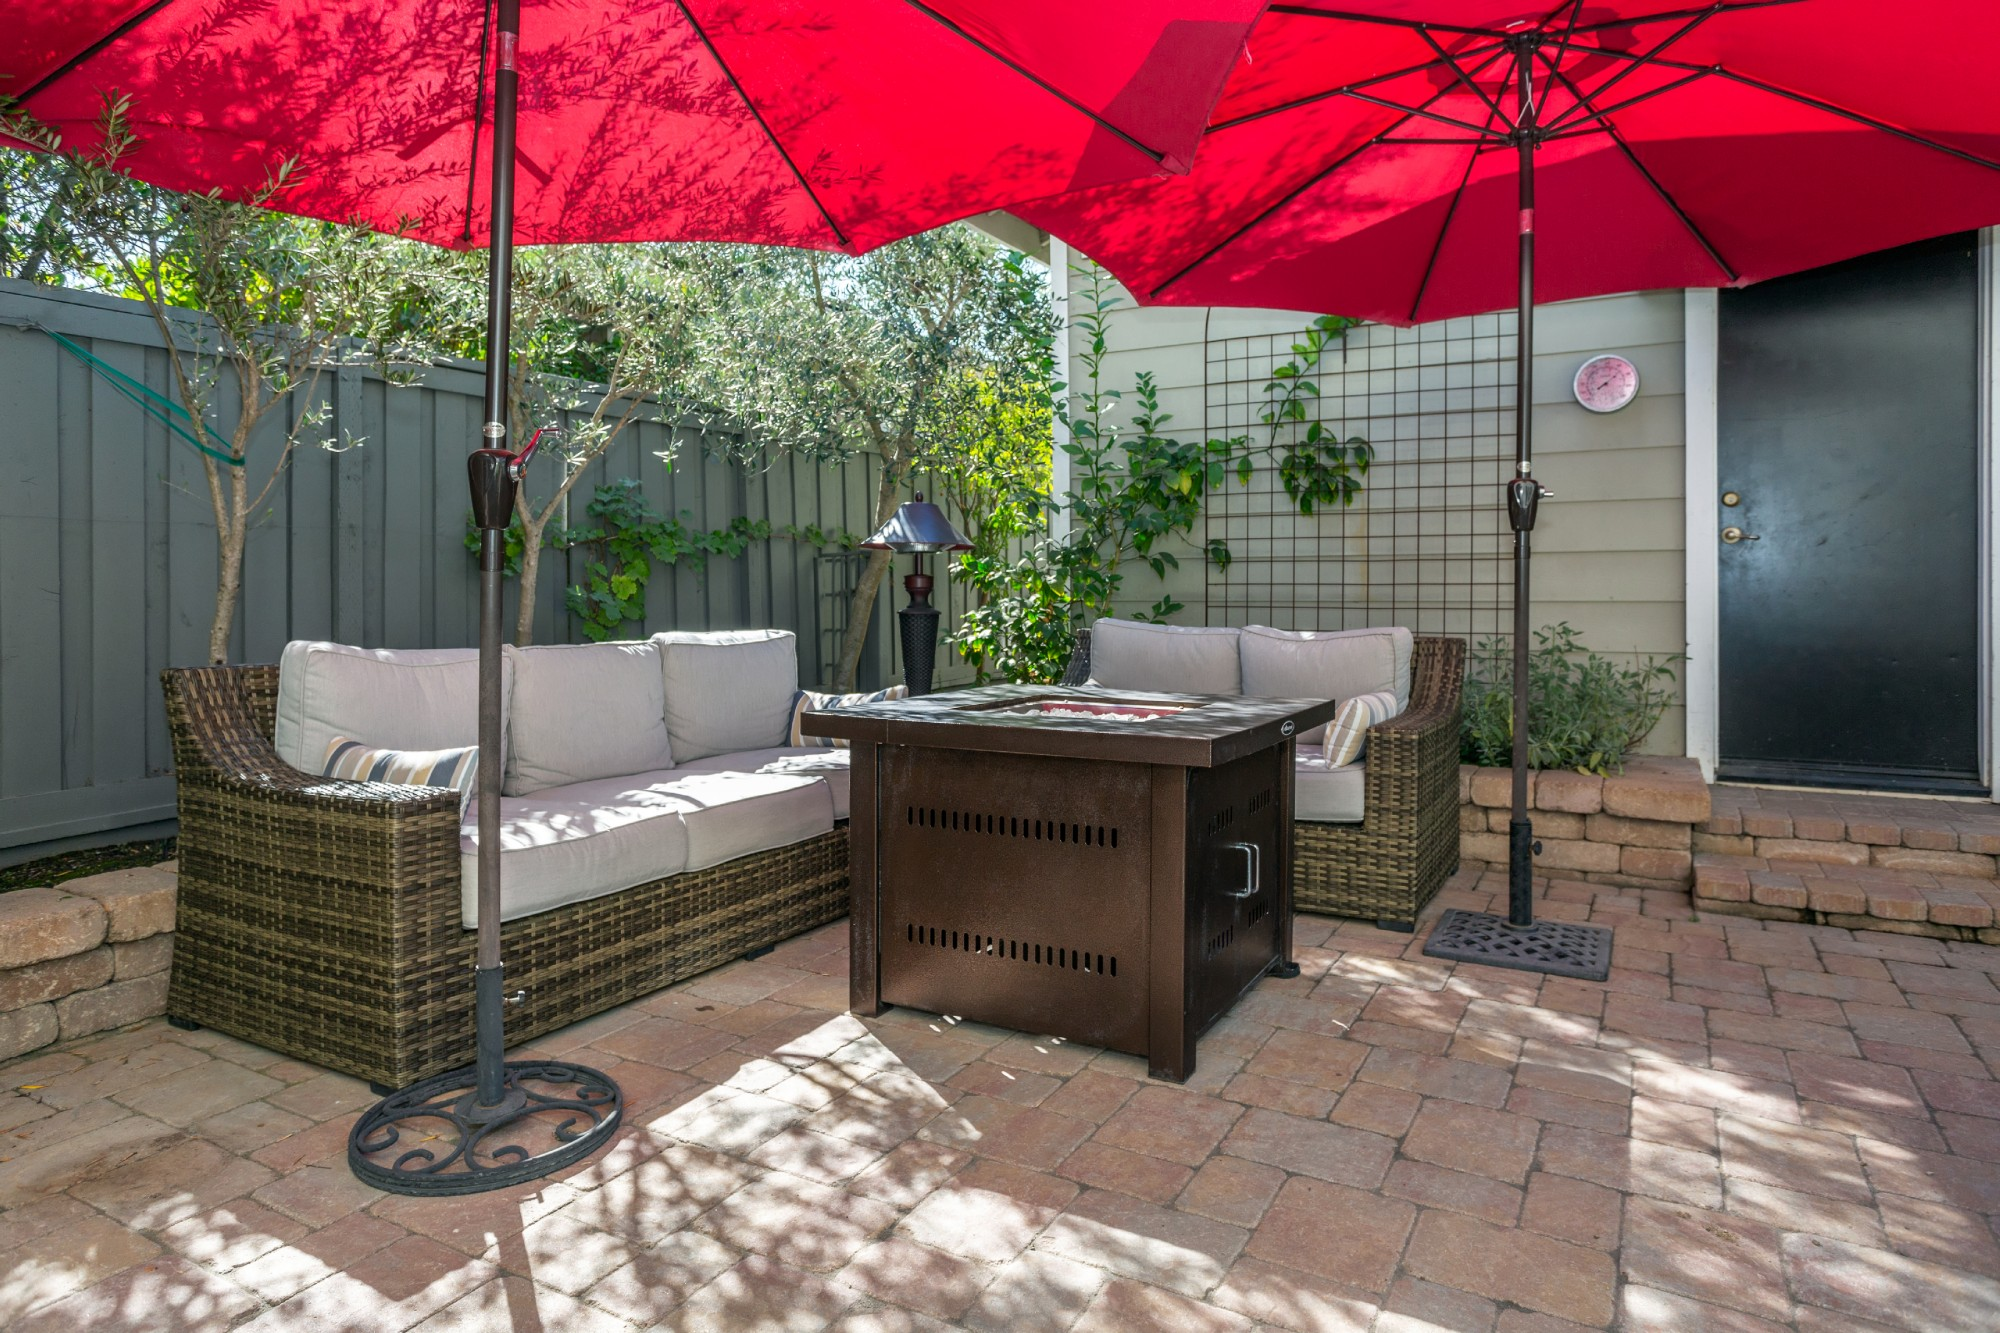 All outdoor furnishings are included, including the gas firepit